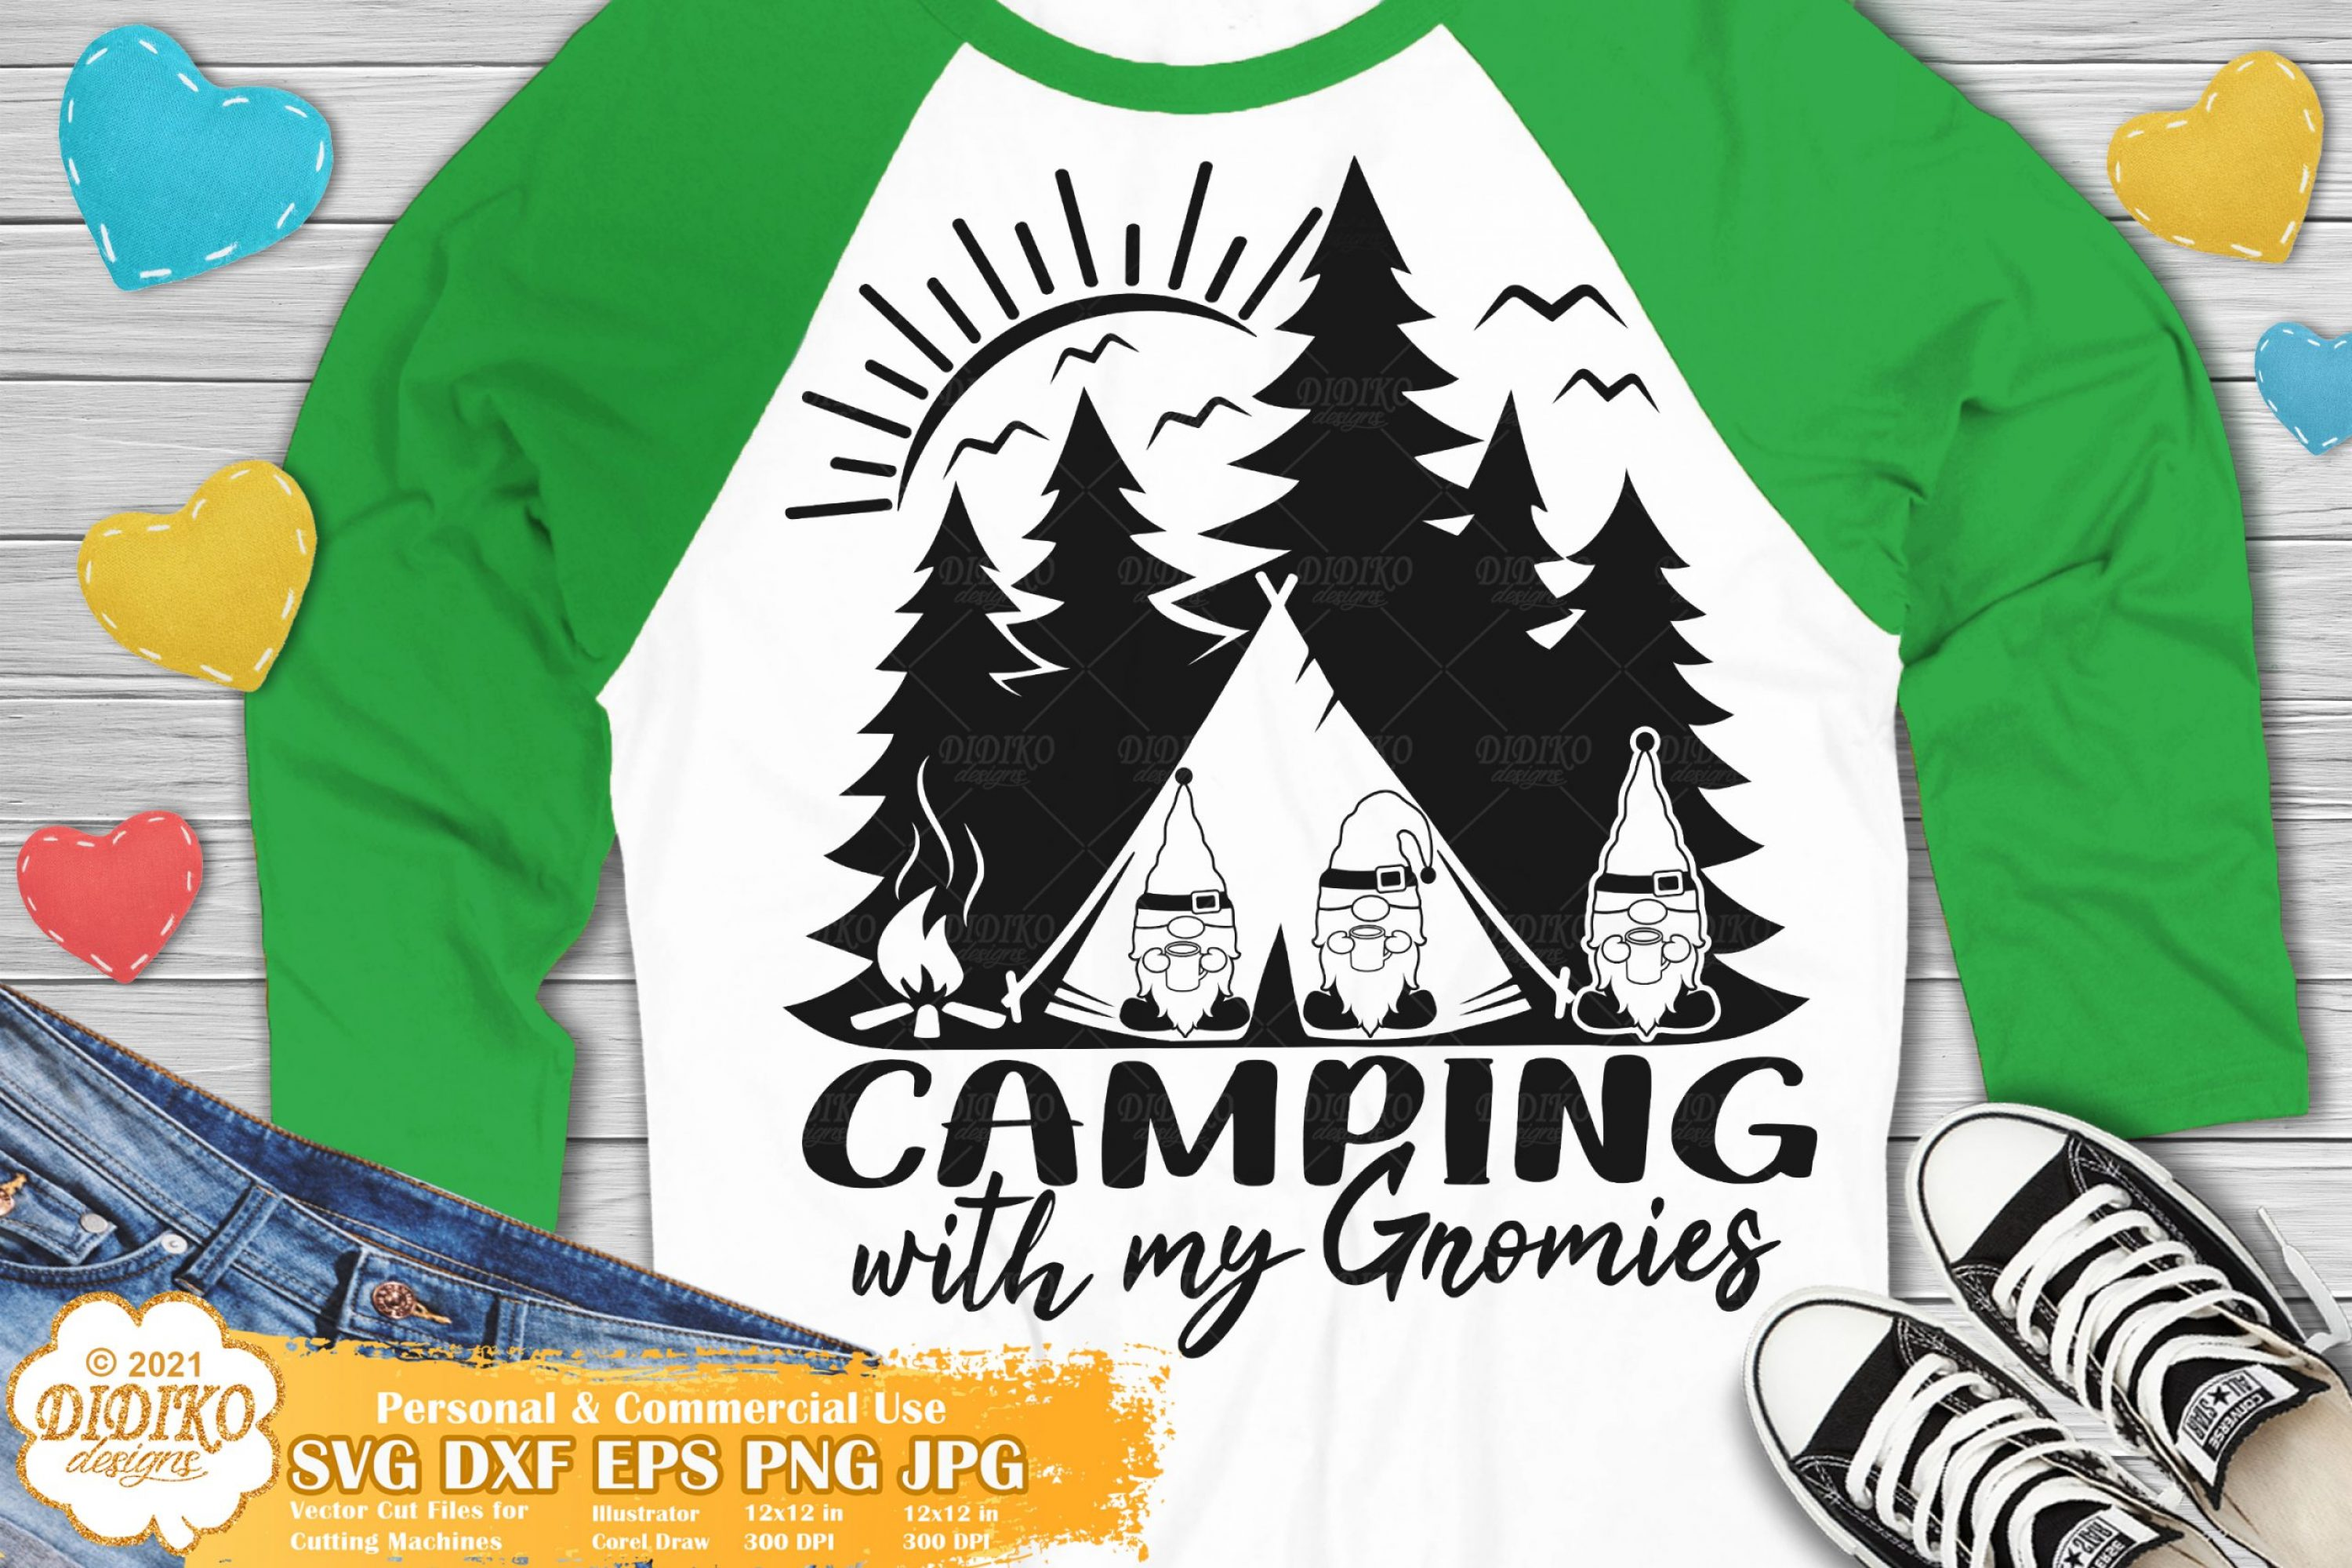 Camping Gnomes SVG, Camping with My Gnomies Svg